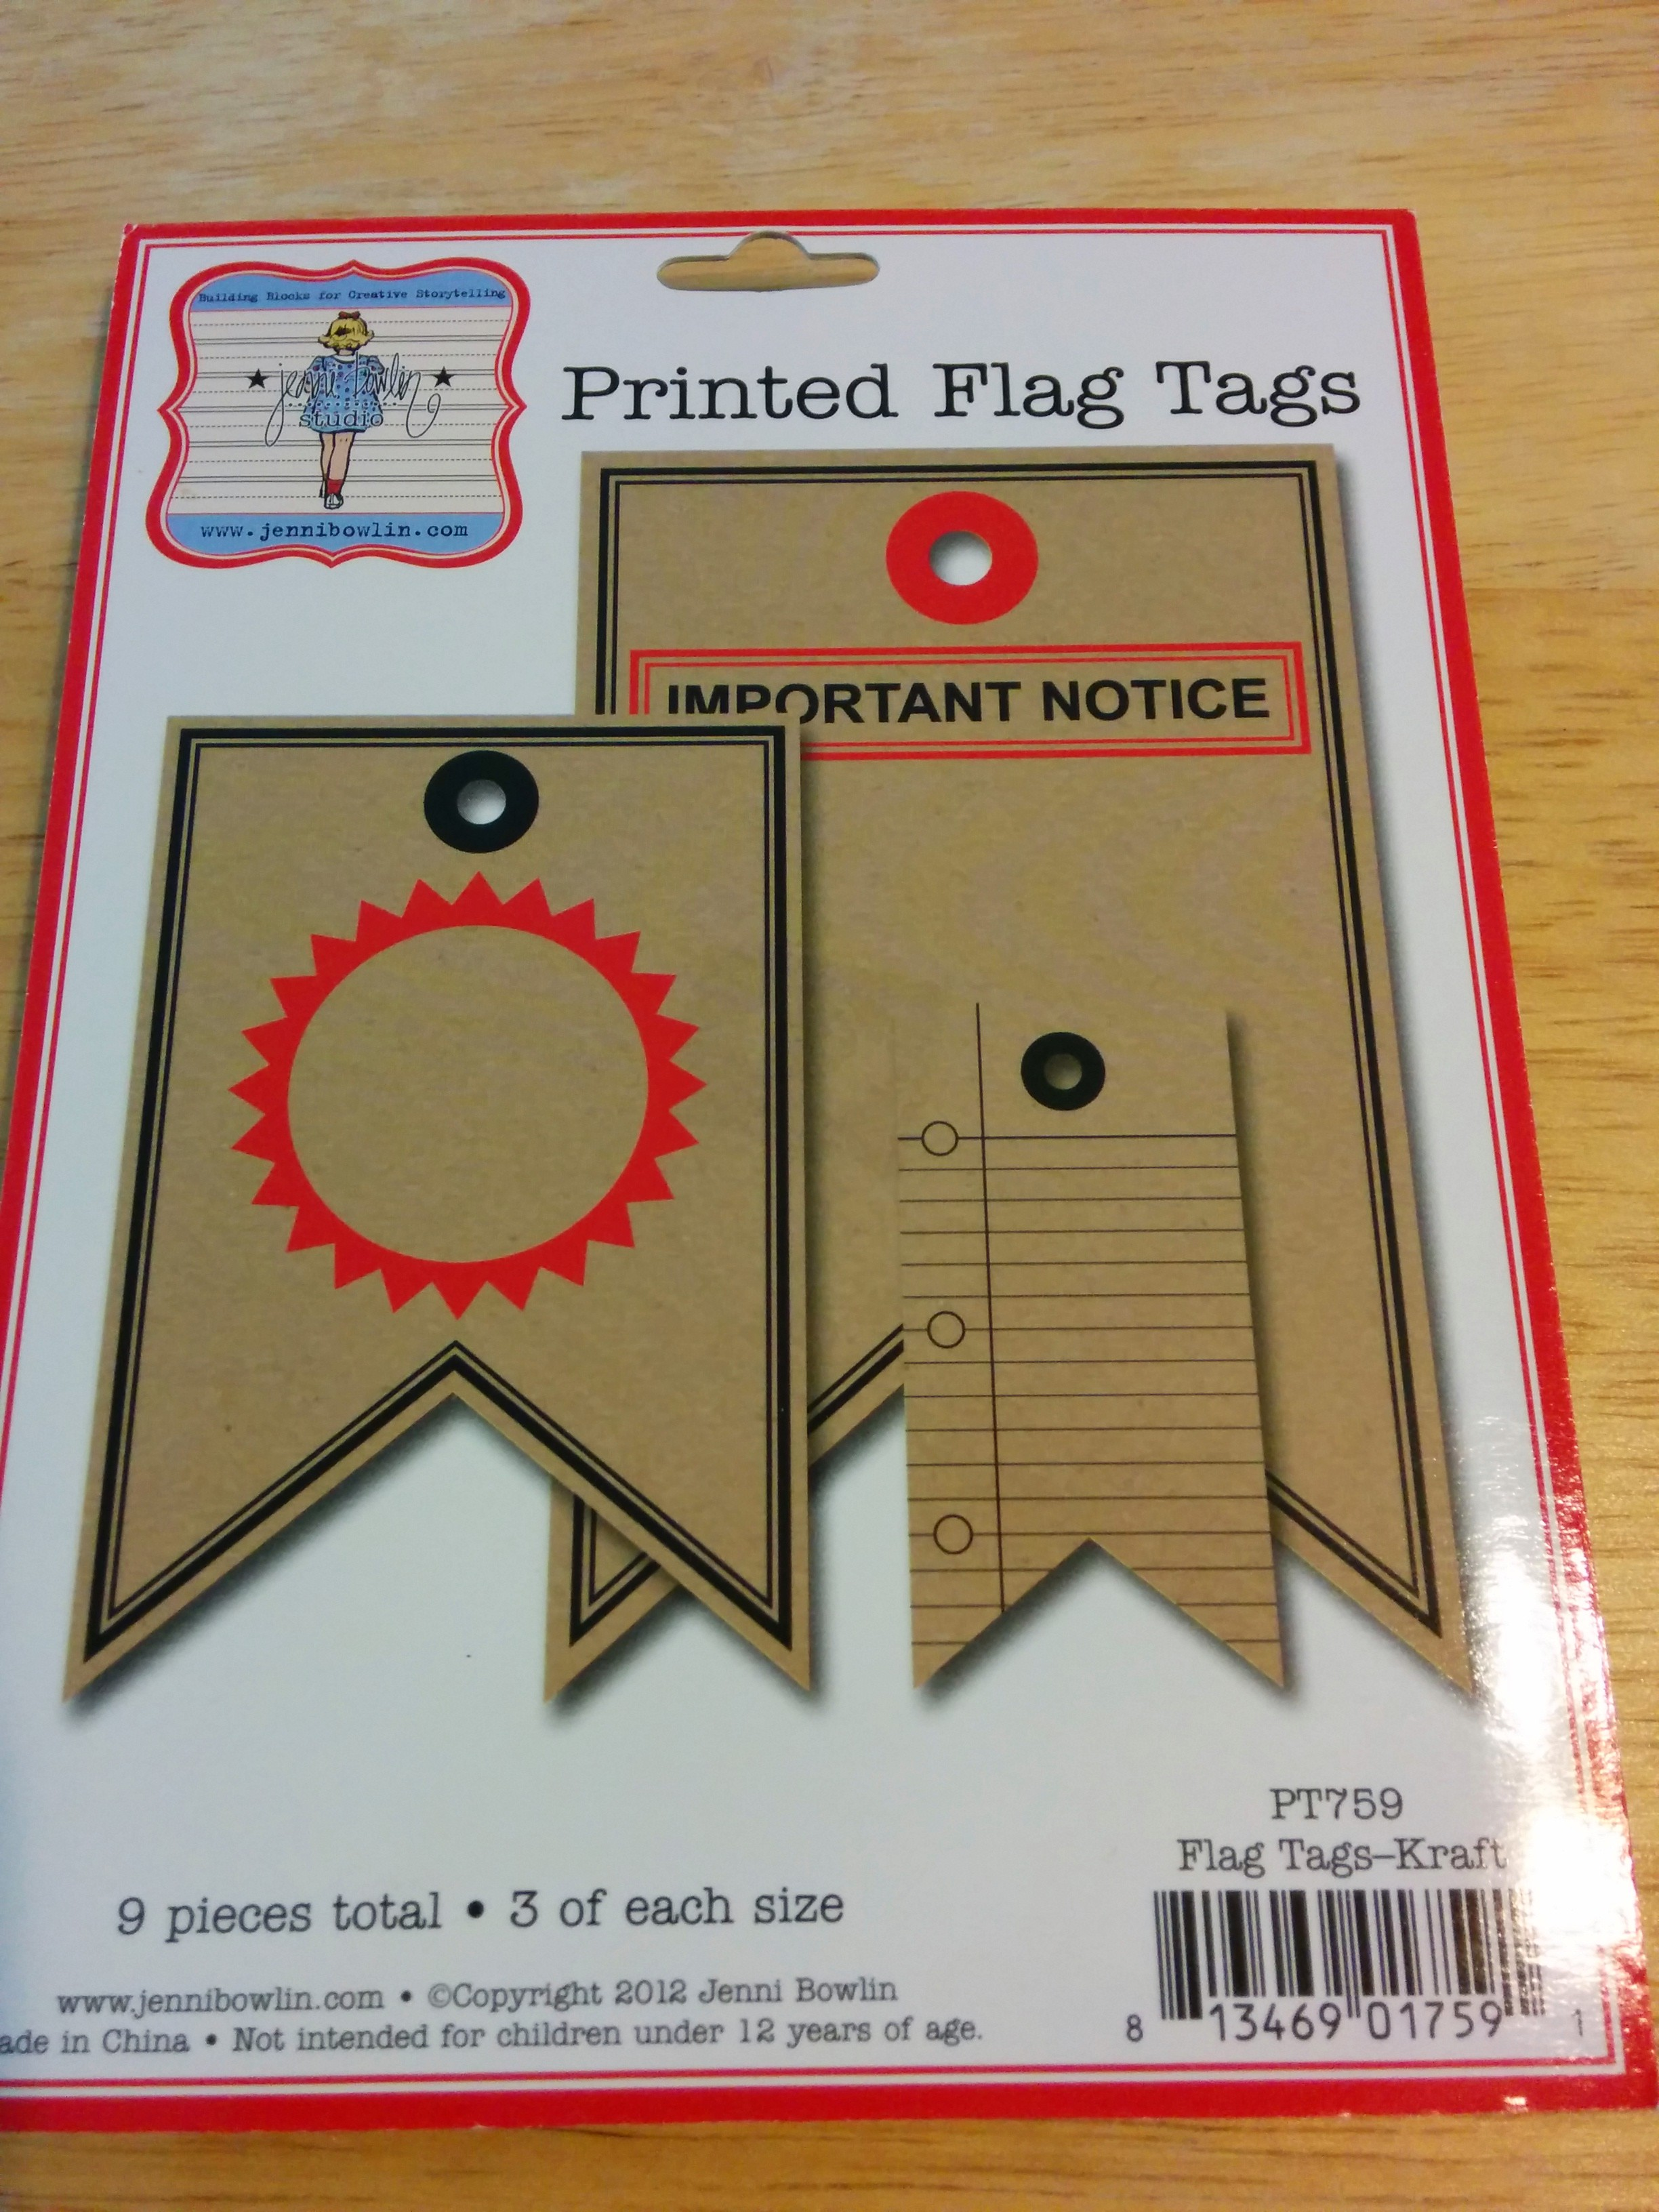 How to scrapbook materials - Printed Flag Tags Img_20140625_132141